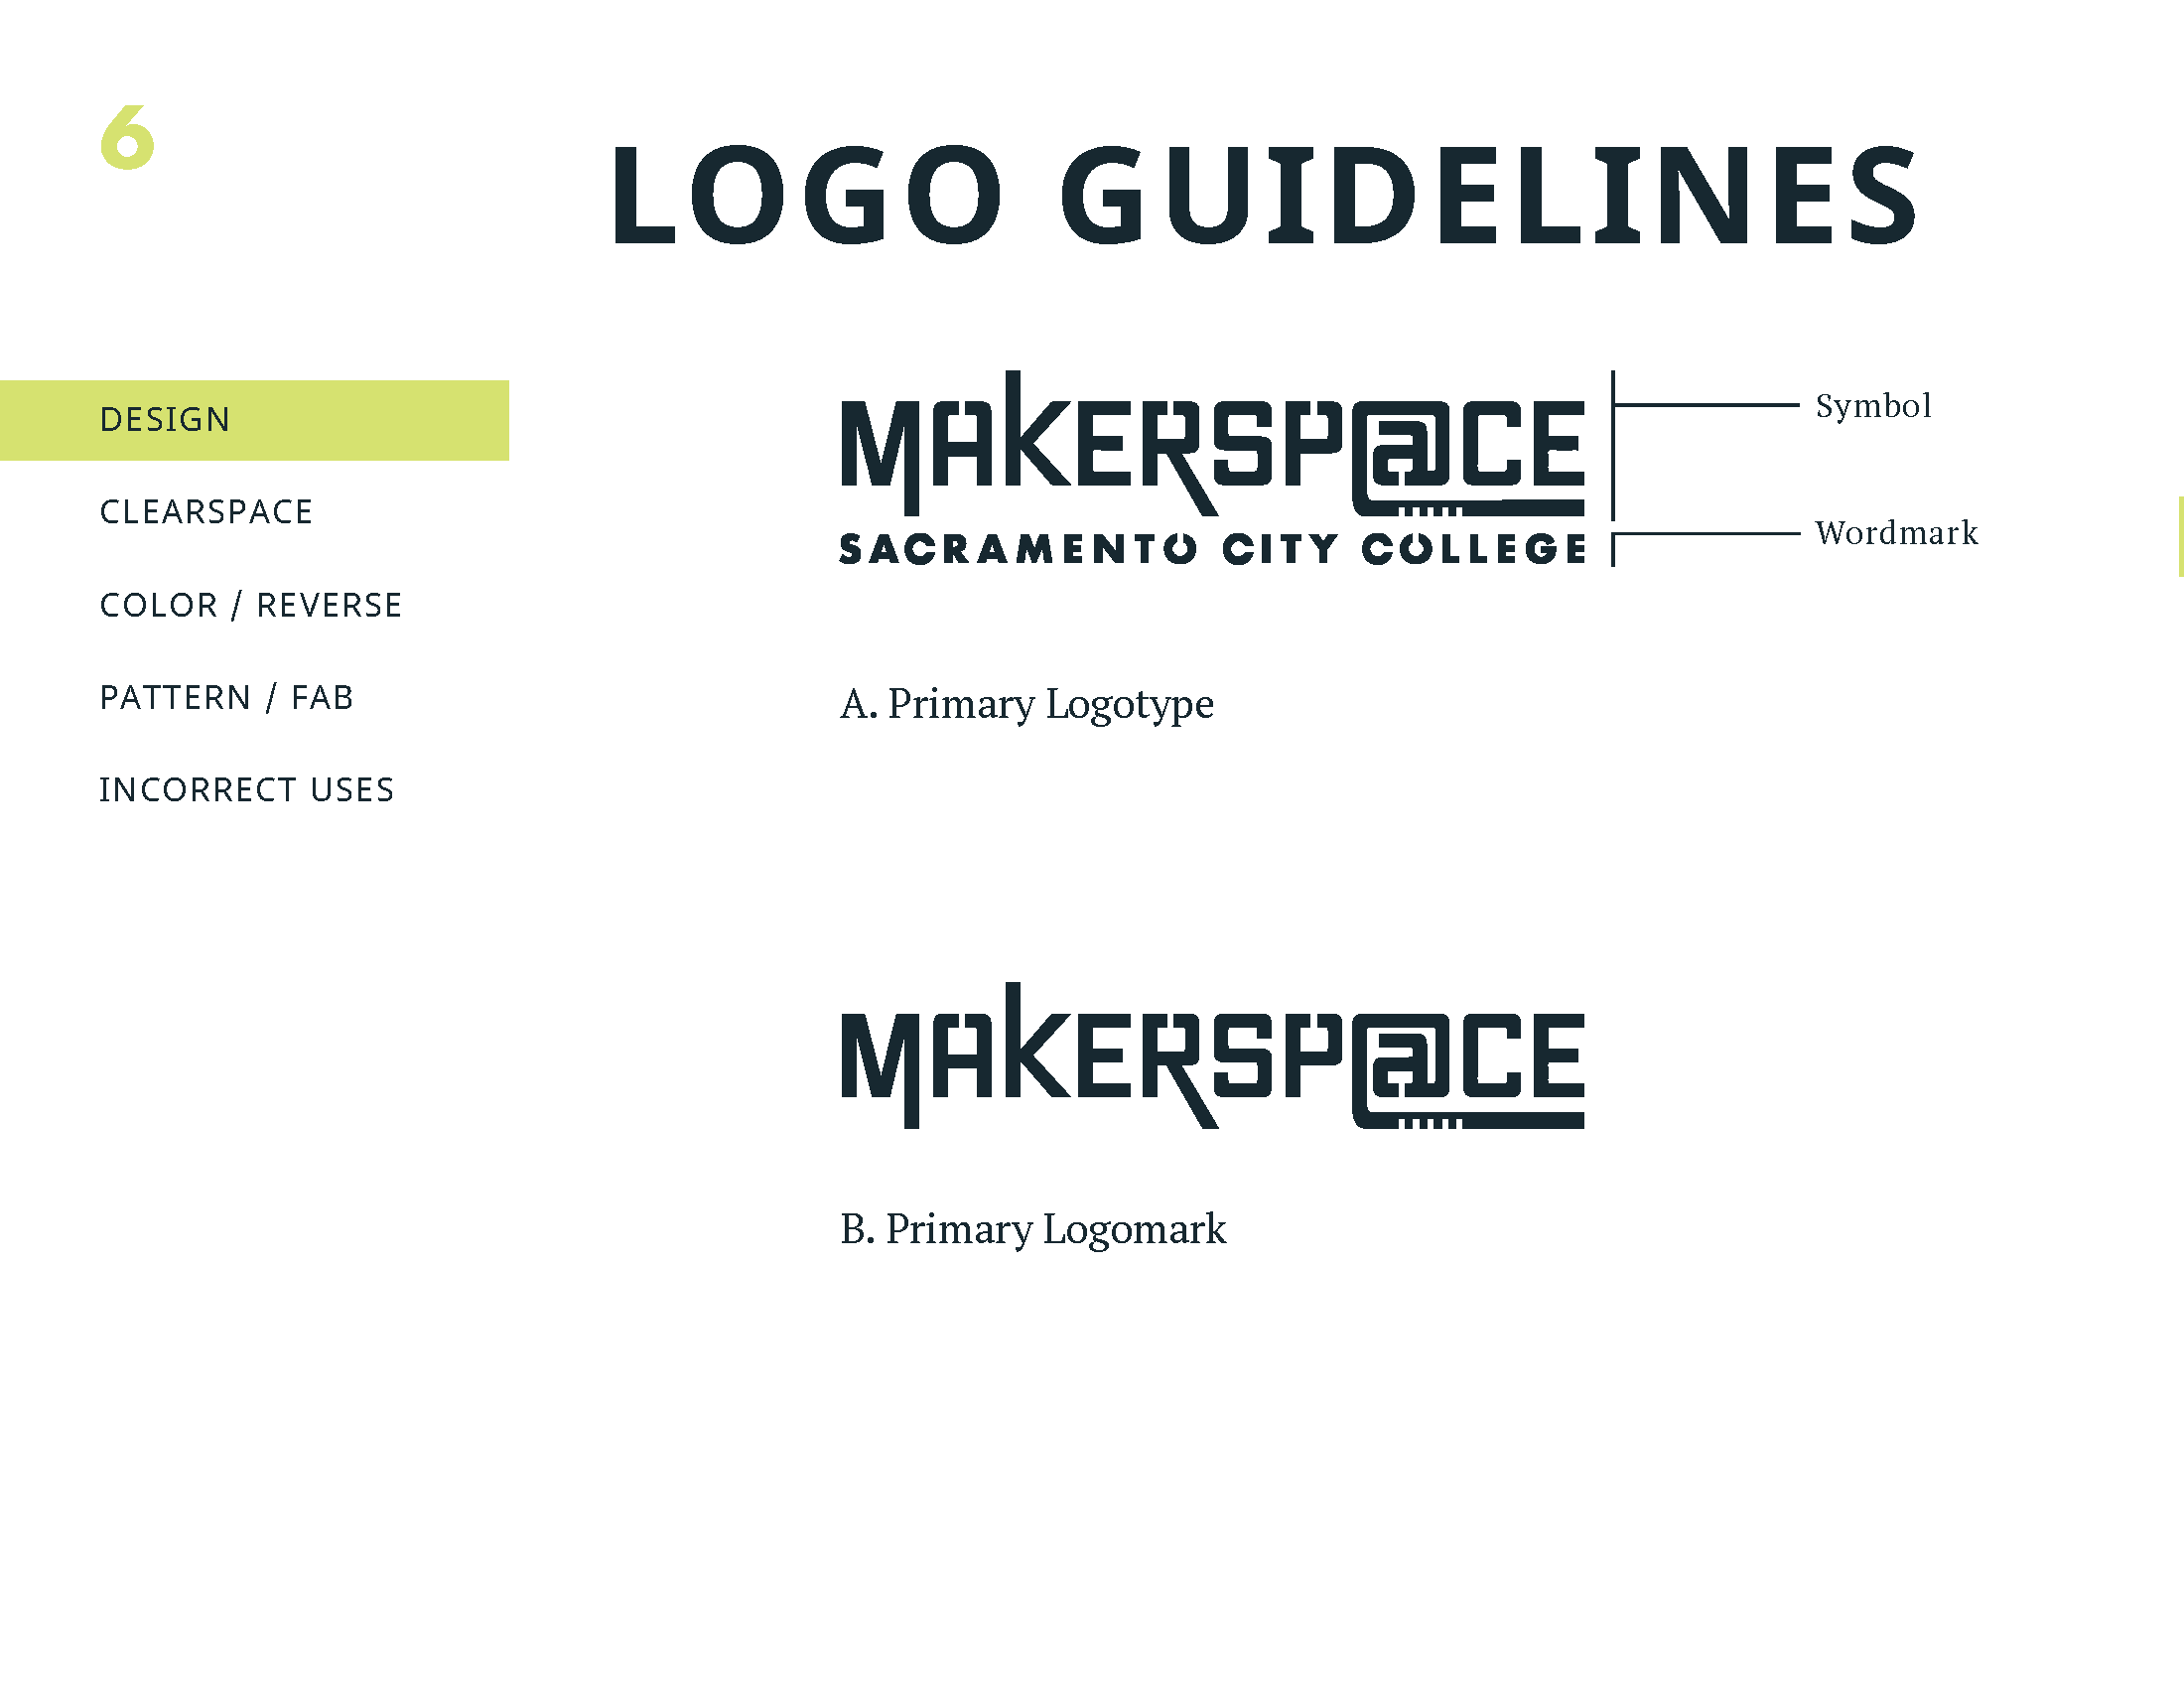 Makerspace_styleguide_Page_06.png